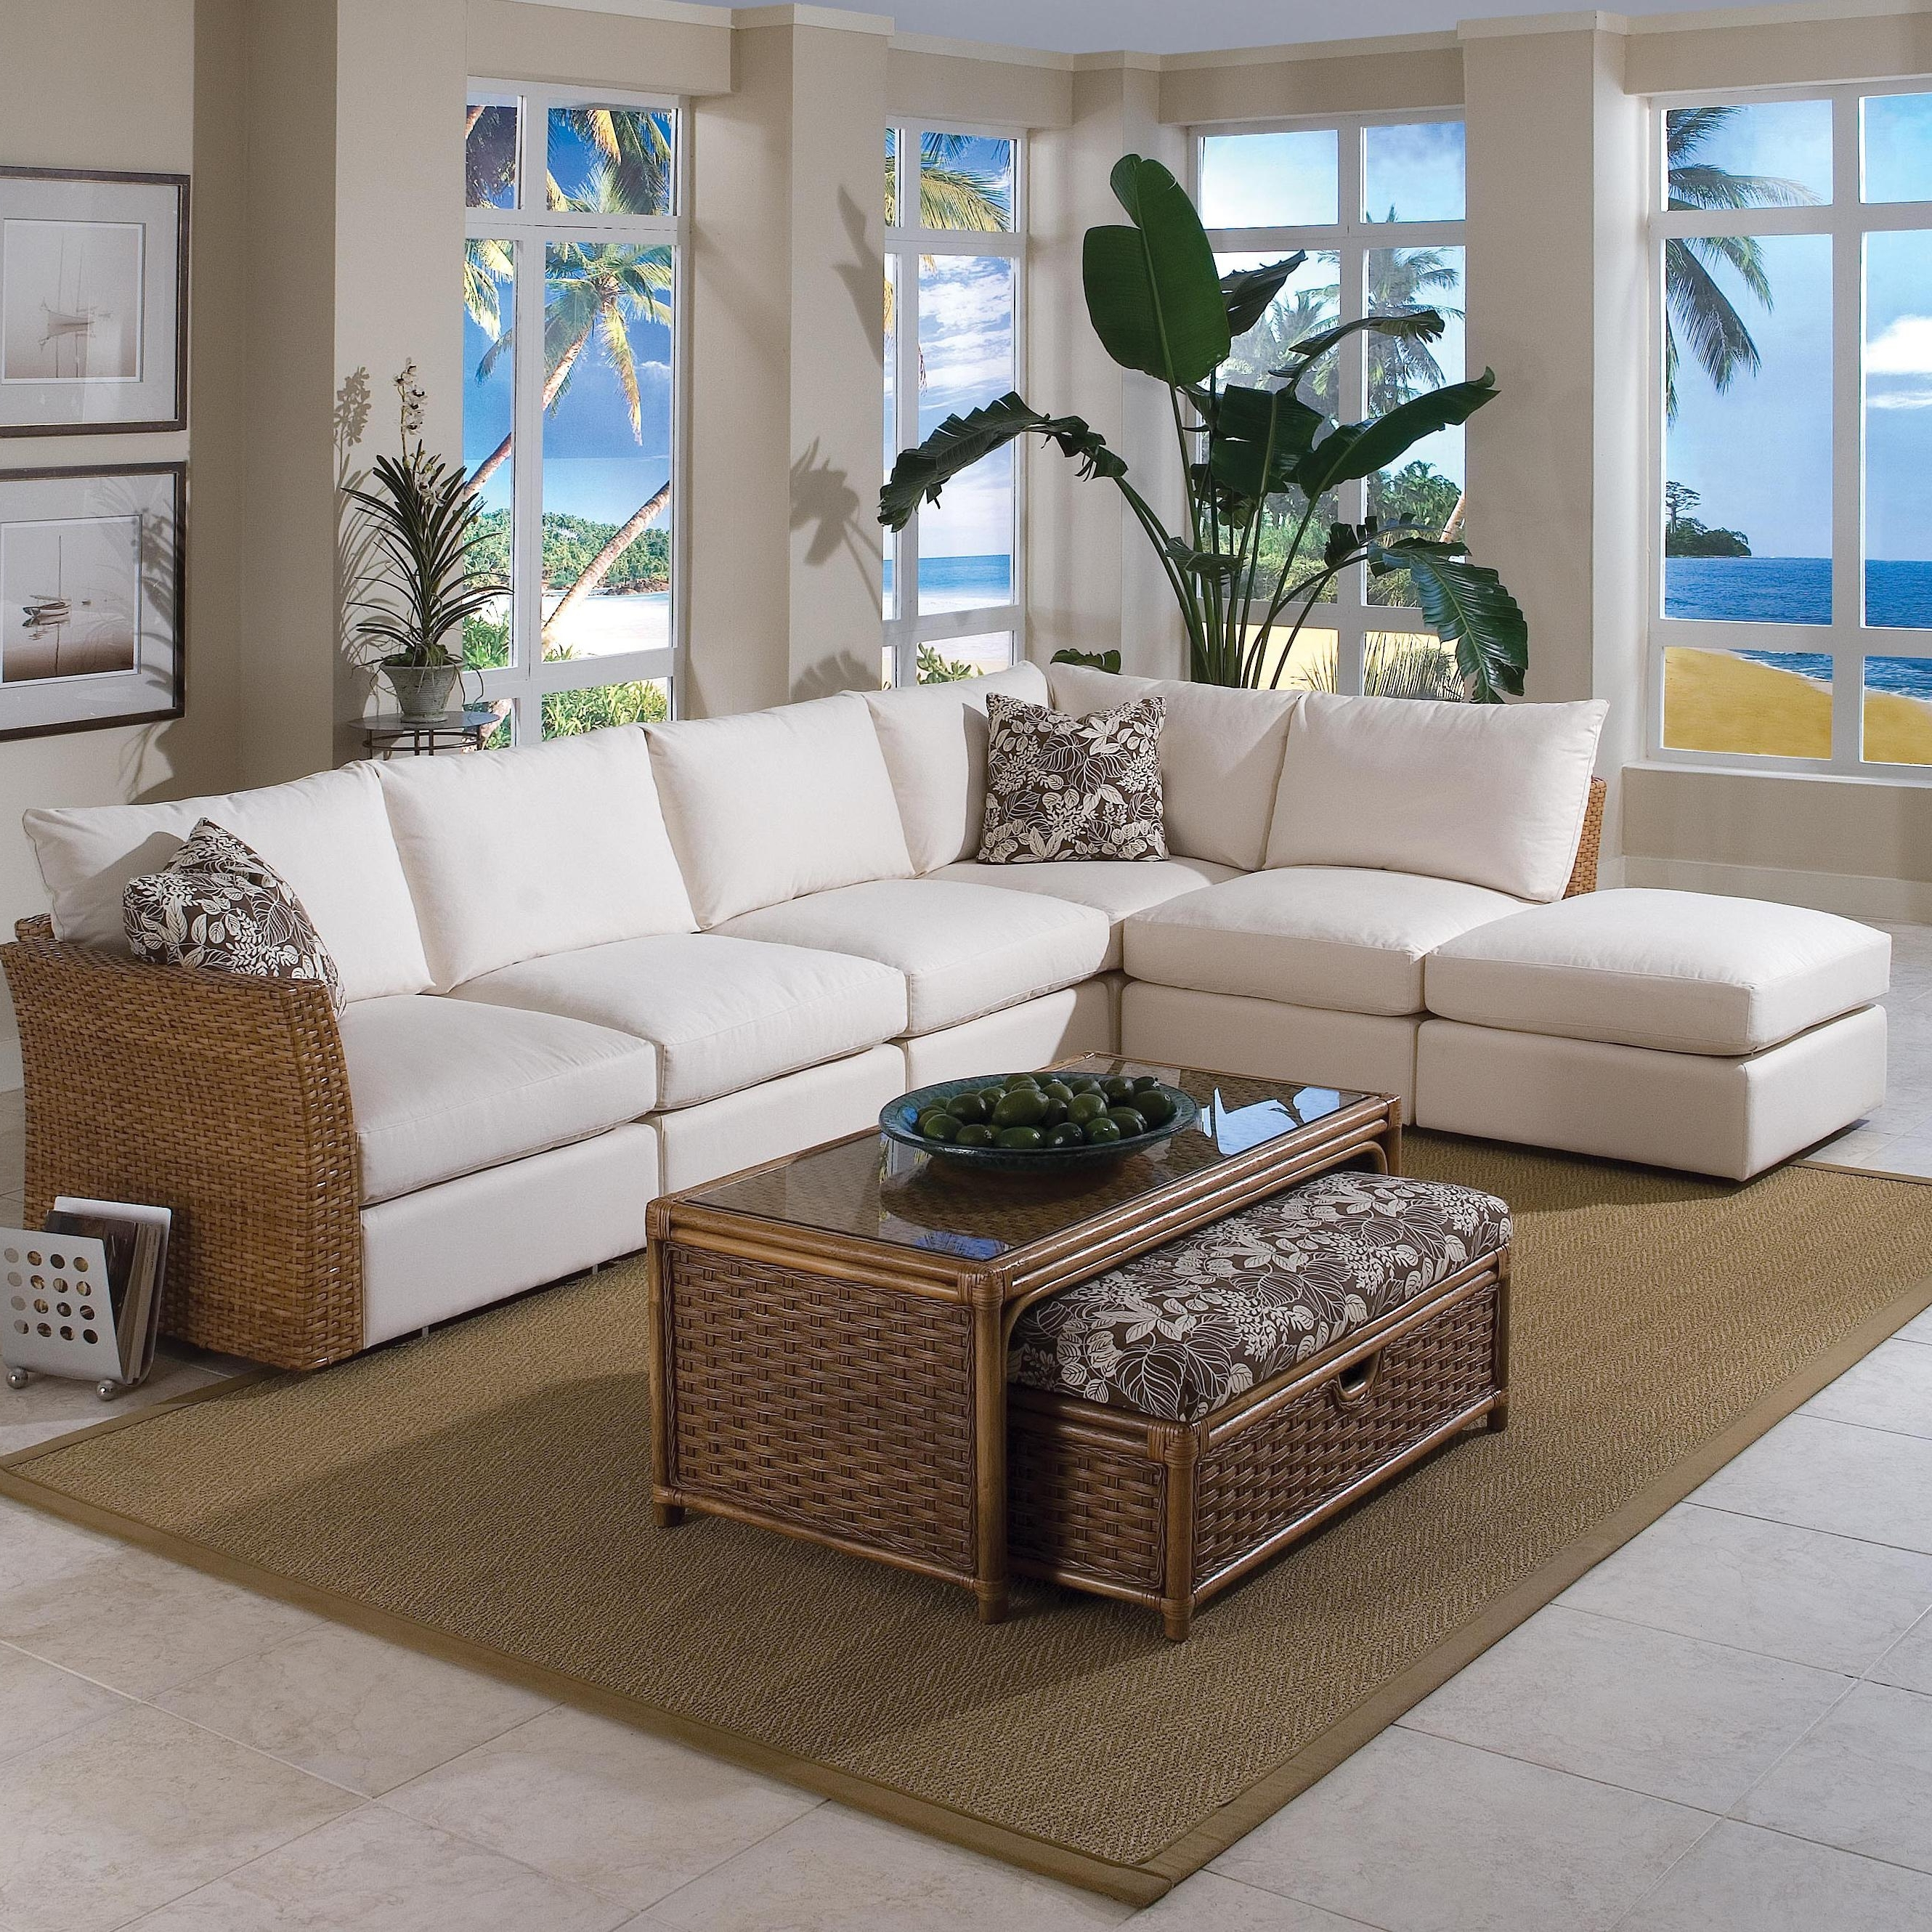 Braxton Culler Grand Water Point Tropical Sectional Sofa With Two Within Widely Used Naples Fl Sectional Sofas (View 2 of 15)